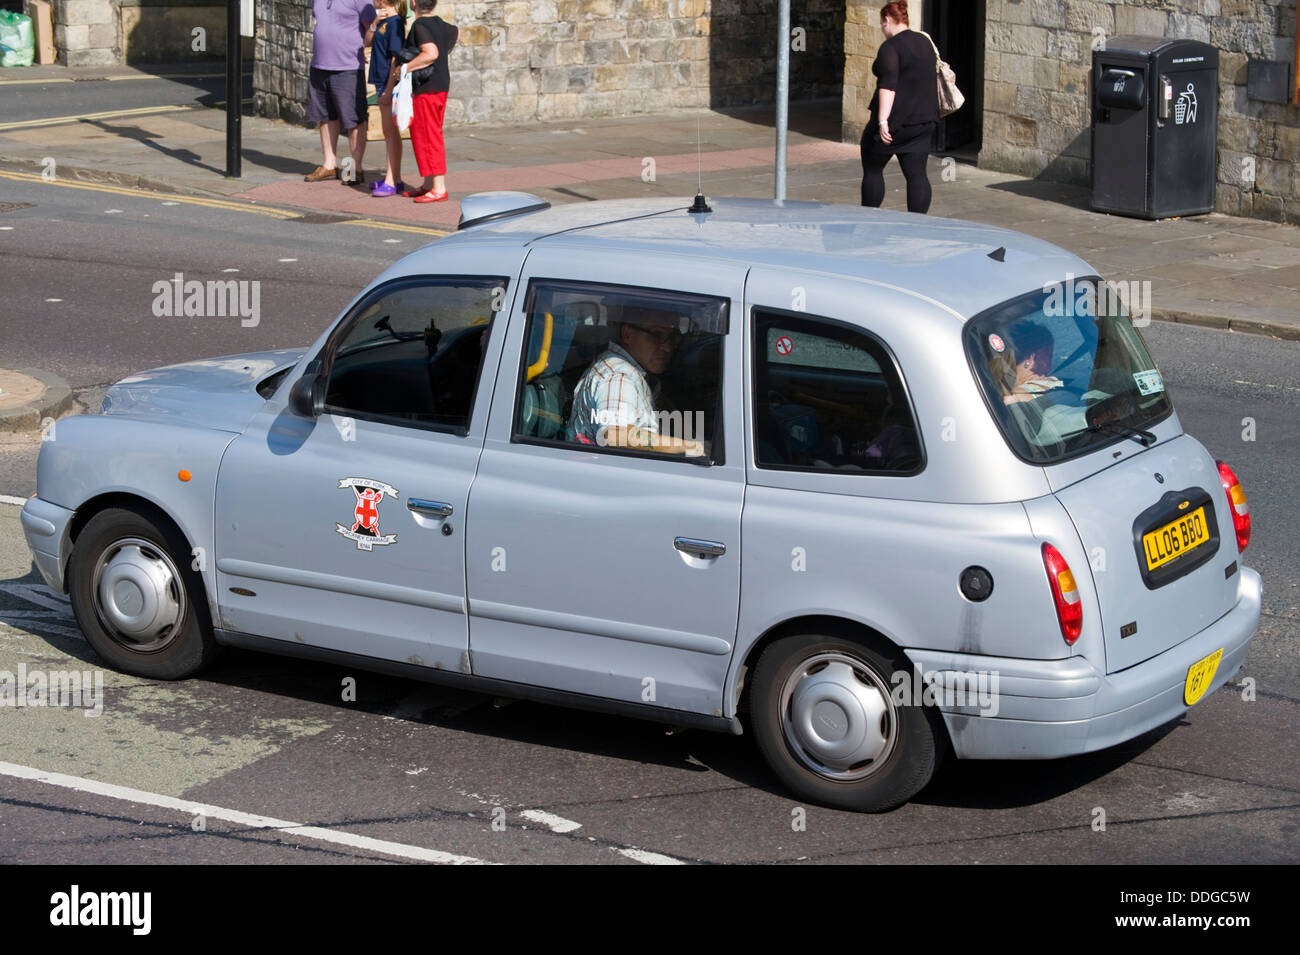 Taxi Hackney Carriage working in the city of York North Yorkshire England UK - Stock Image